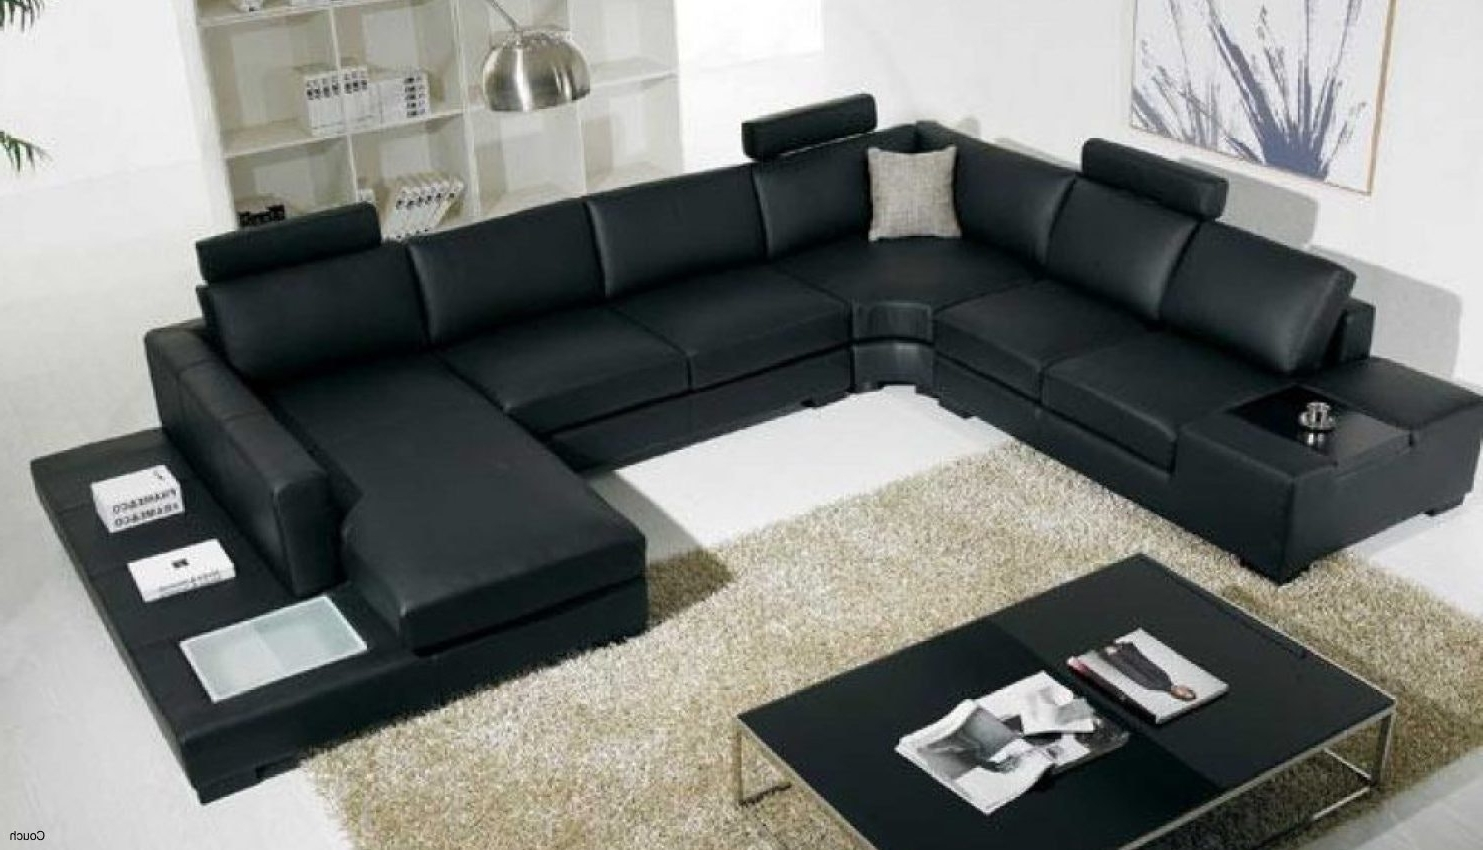 Fabulous Inspirative Leather Black Walmart Sofa Bed And Standing Inside Most Up To Date Halifax Sectional Sofas (View 17 of 20)